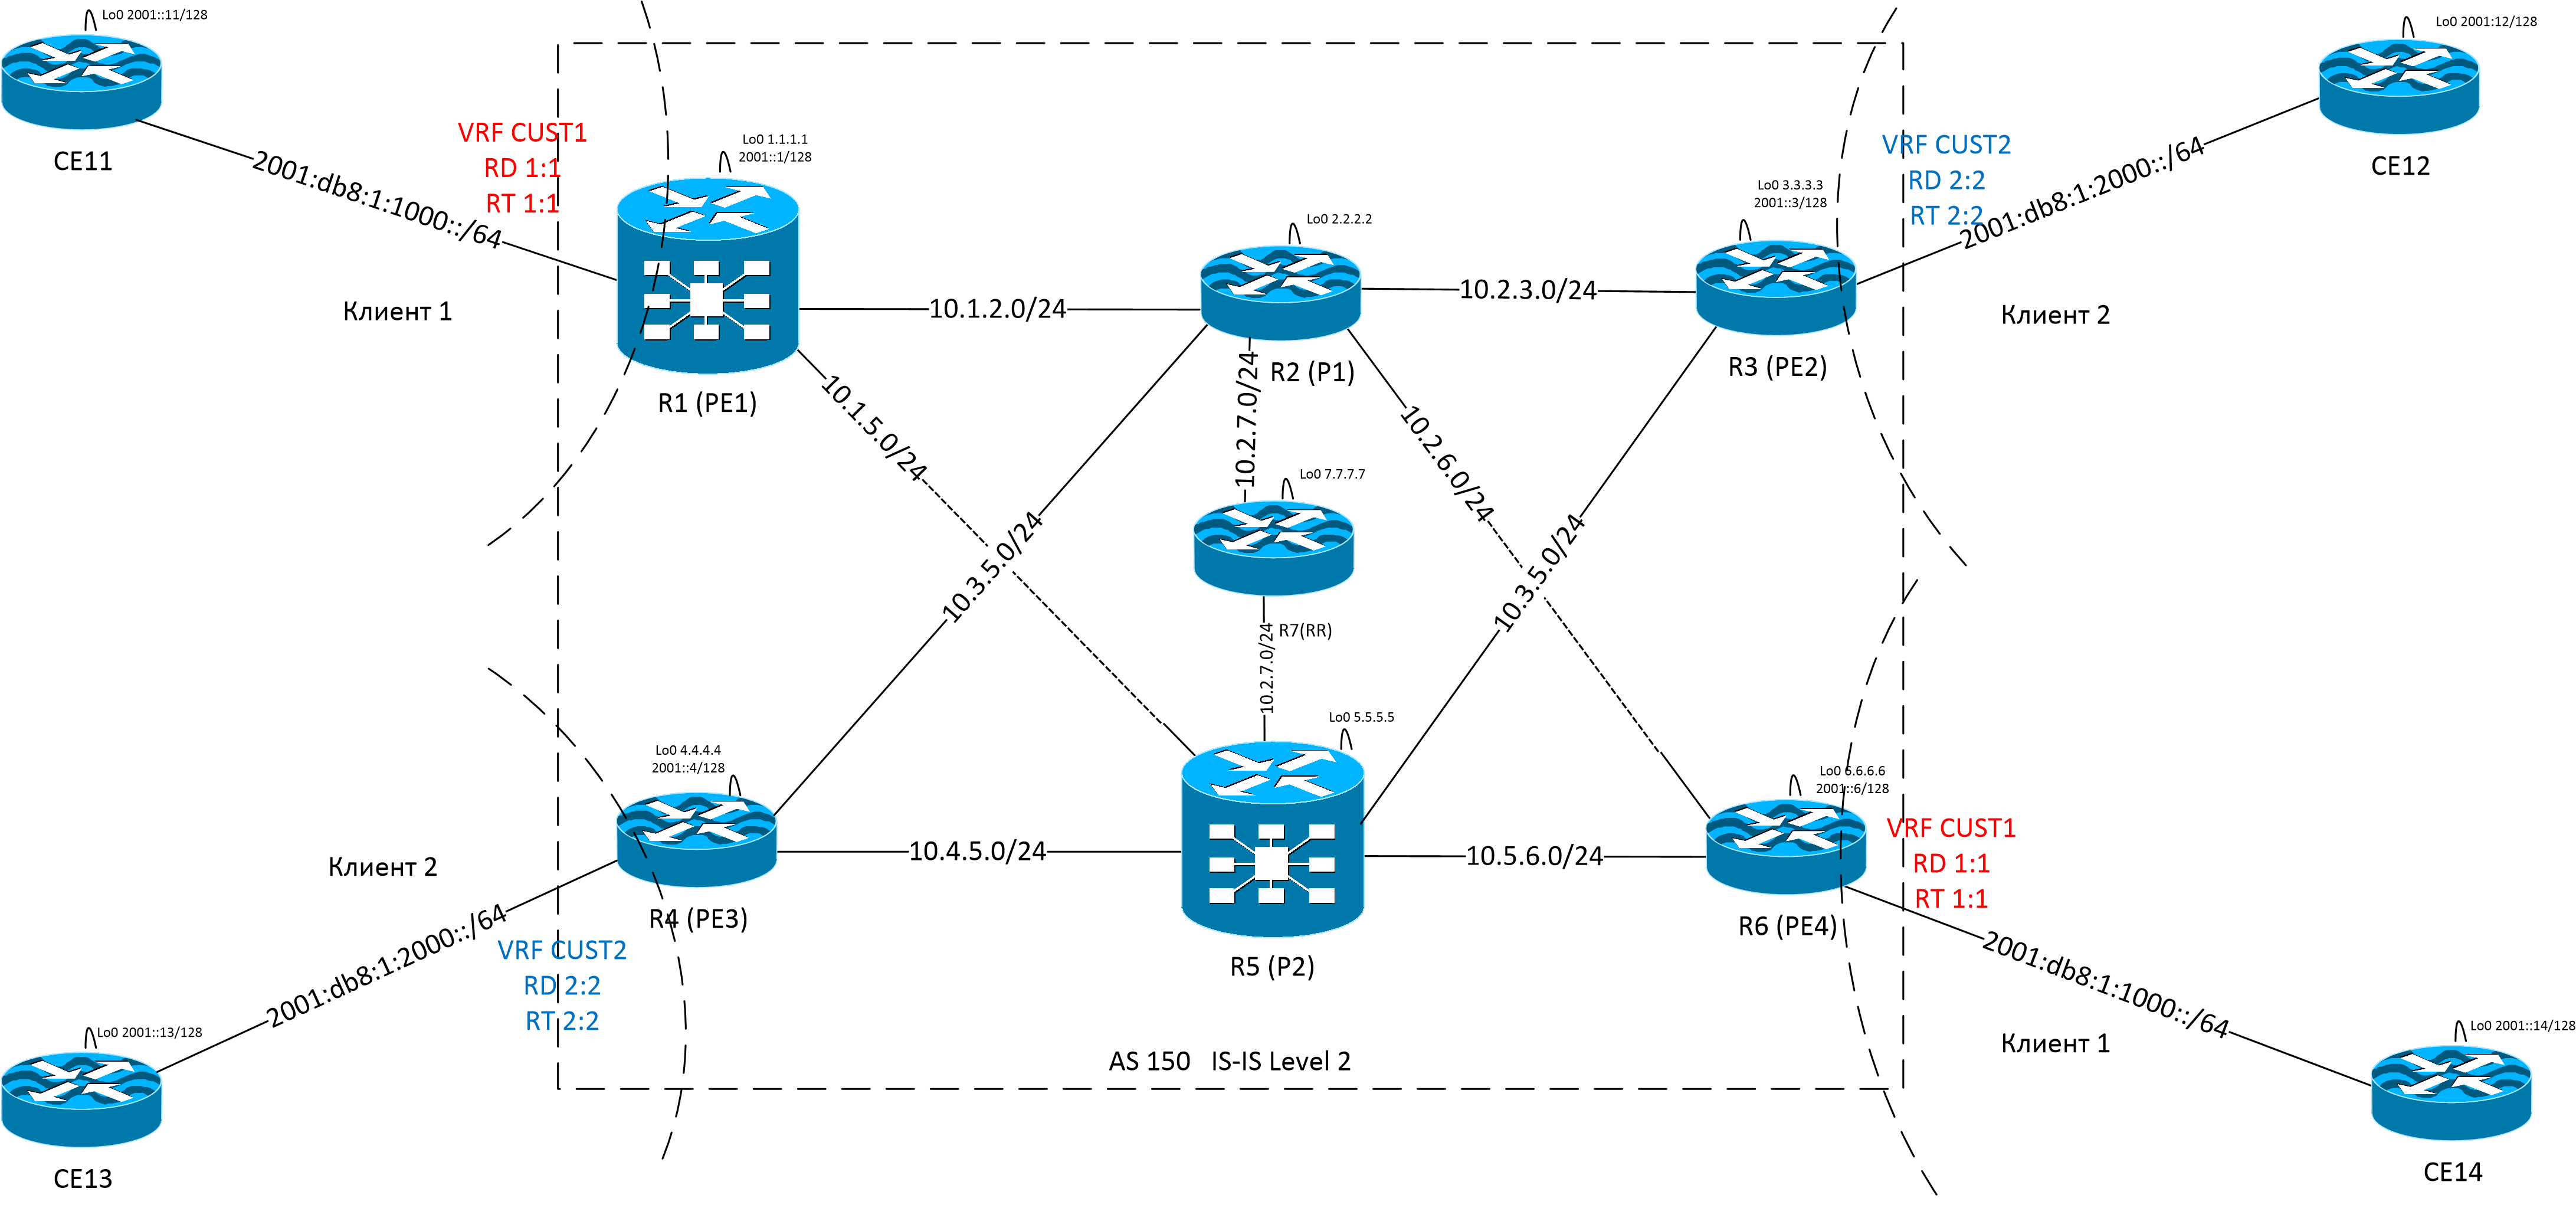 6vpe_map_2